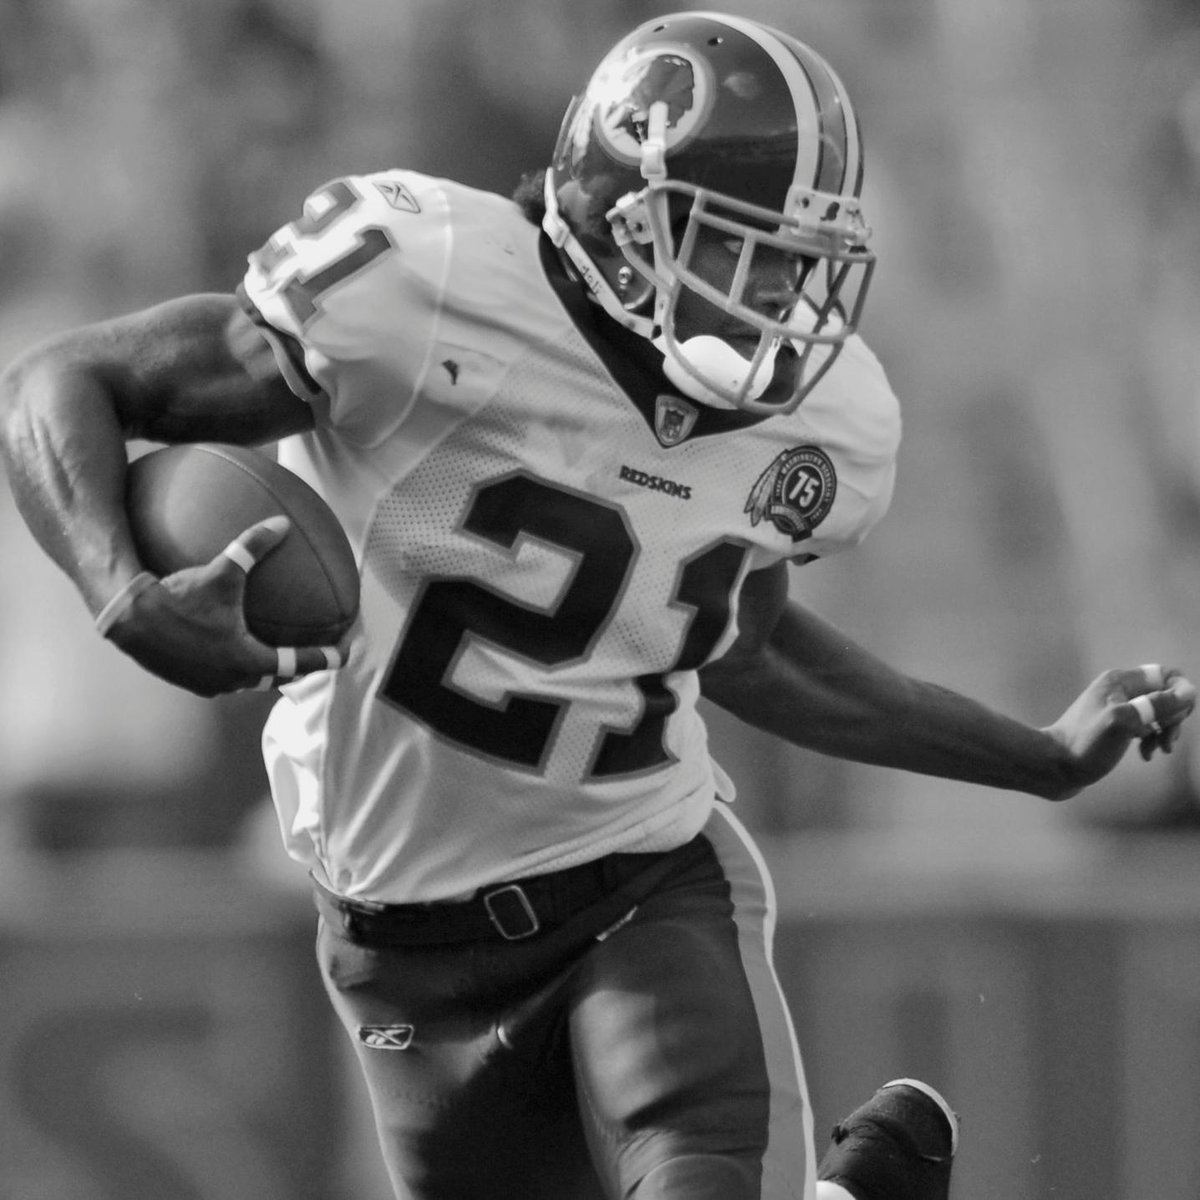 Replying to @NFL: 12 years ago, we lost a legend.  But Sean Taylor's memory lives on. 🙏